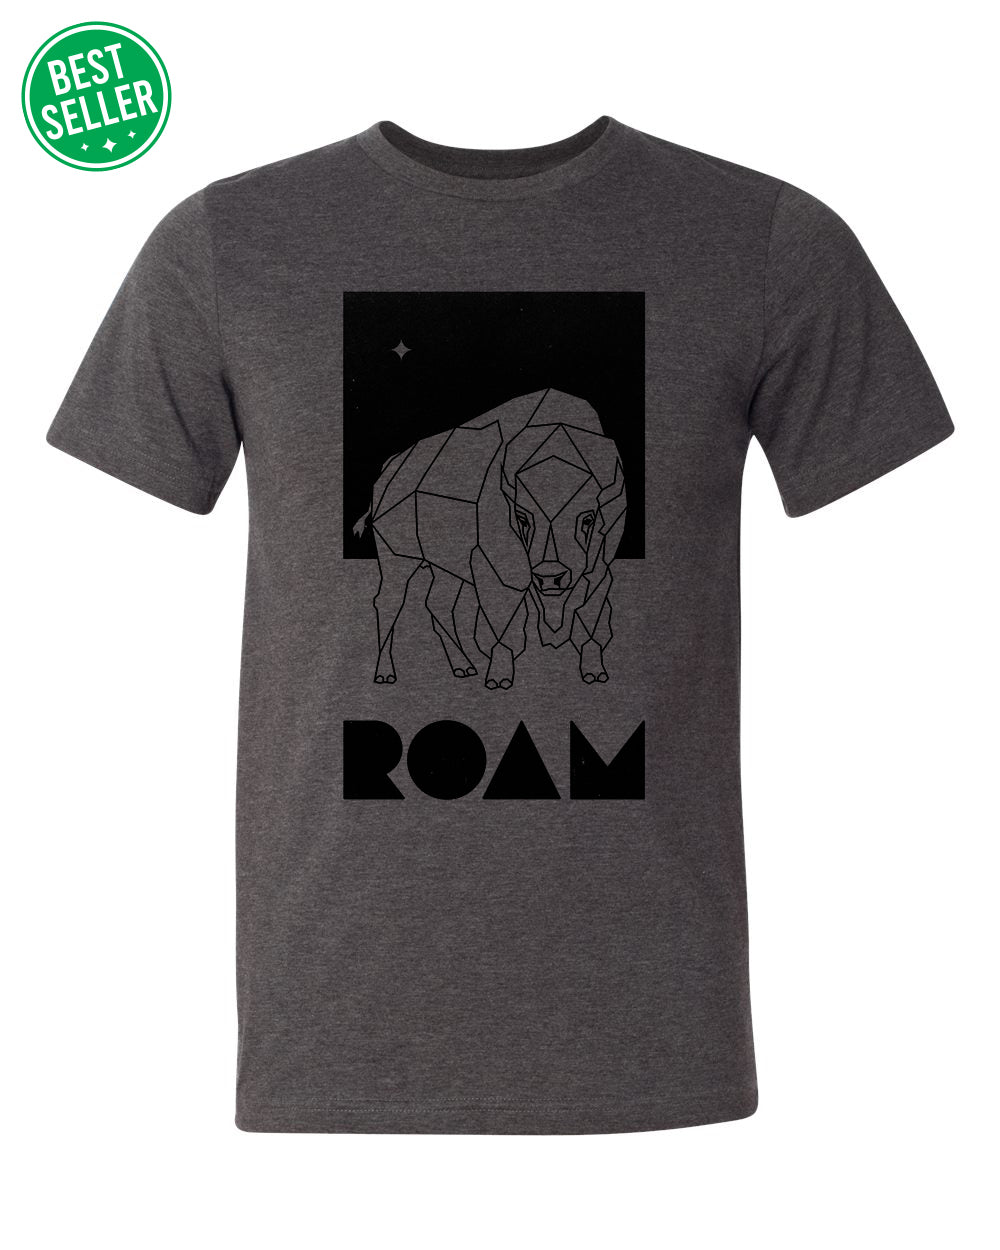 Roam North Star - Heather Dark Grey - Front - BS